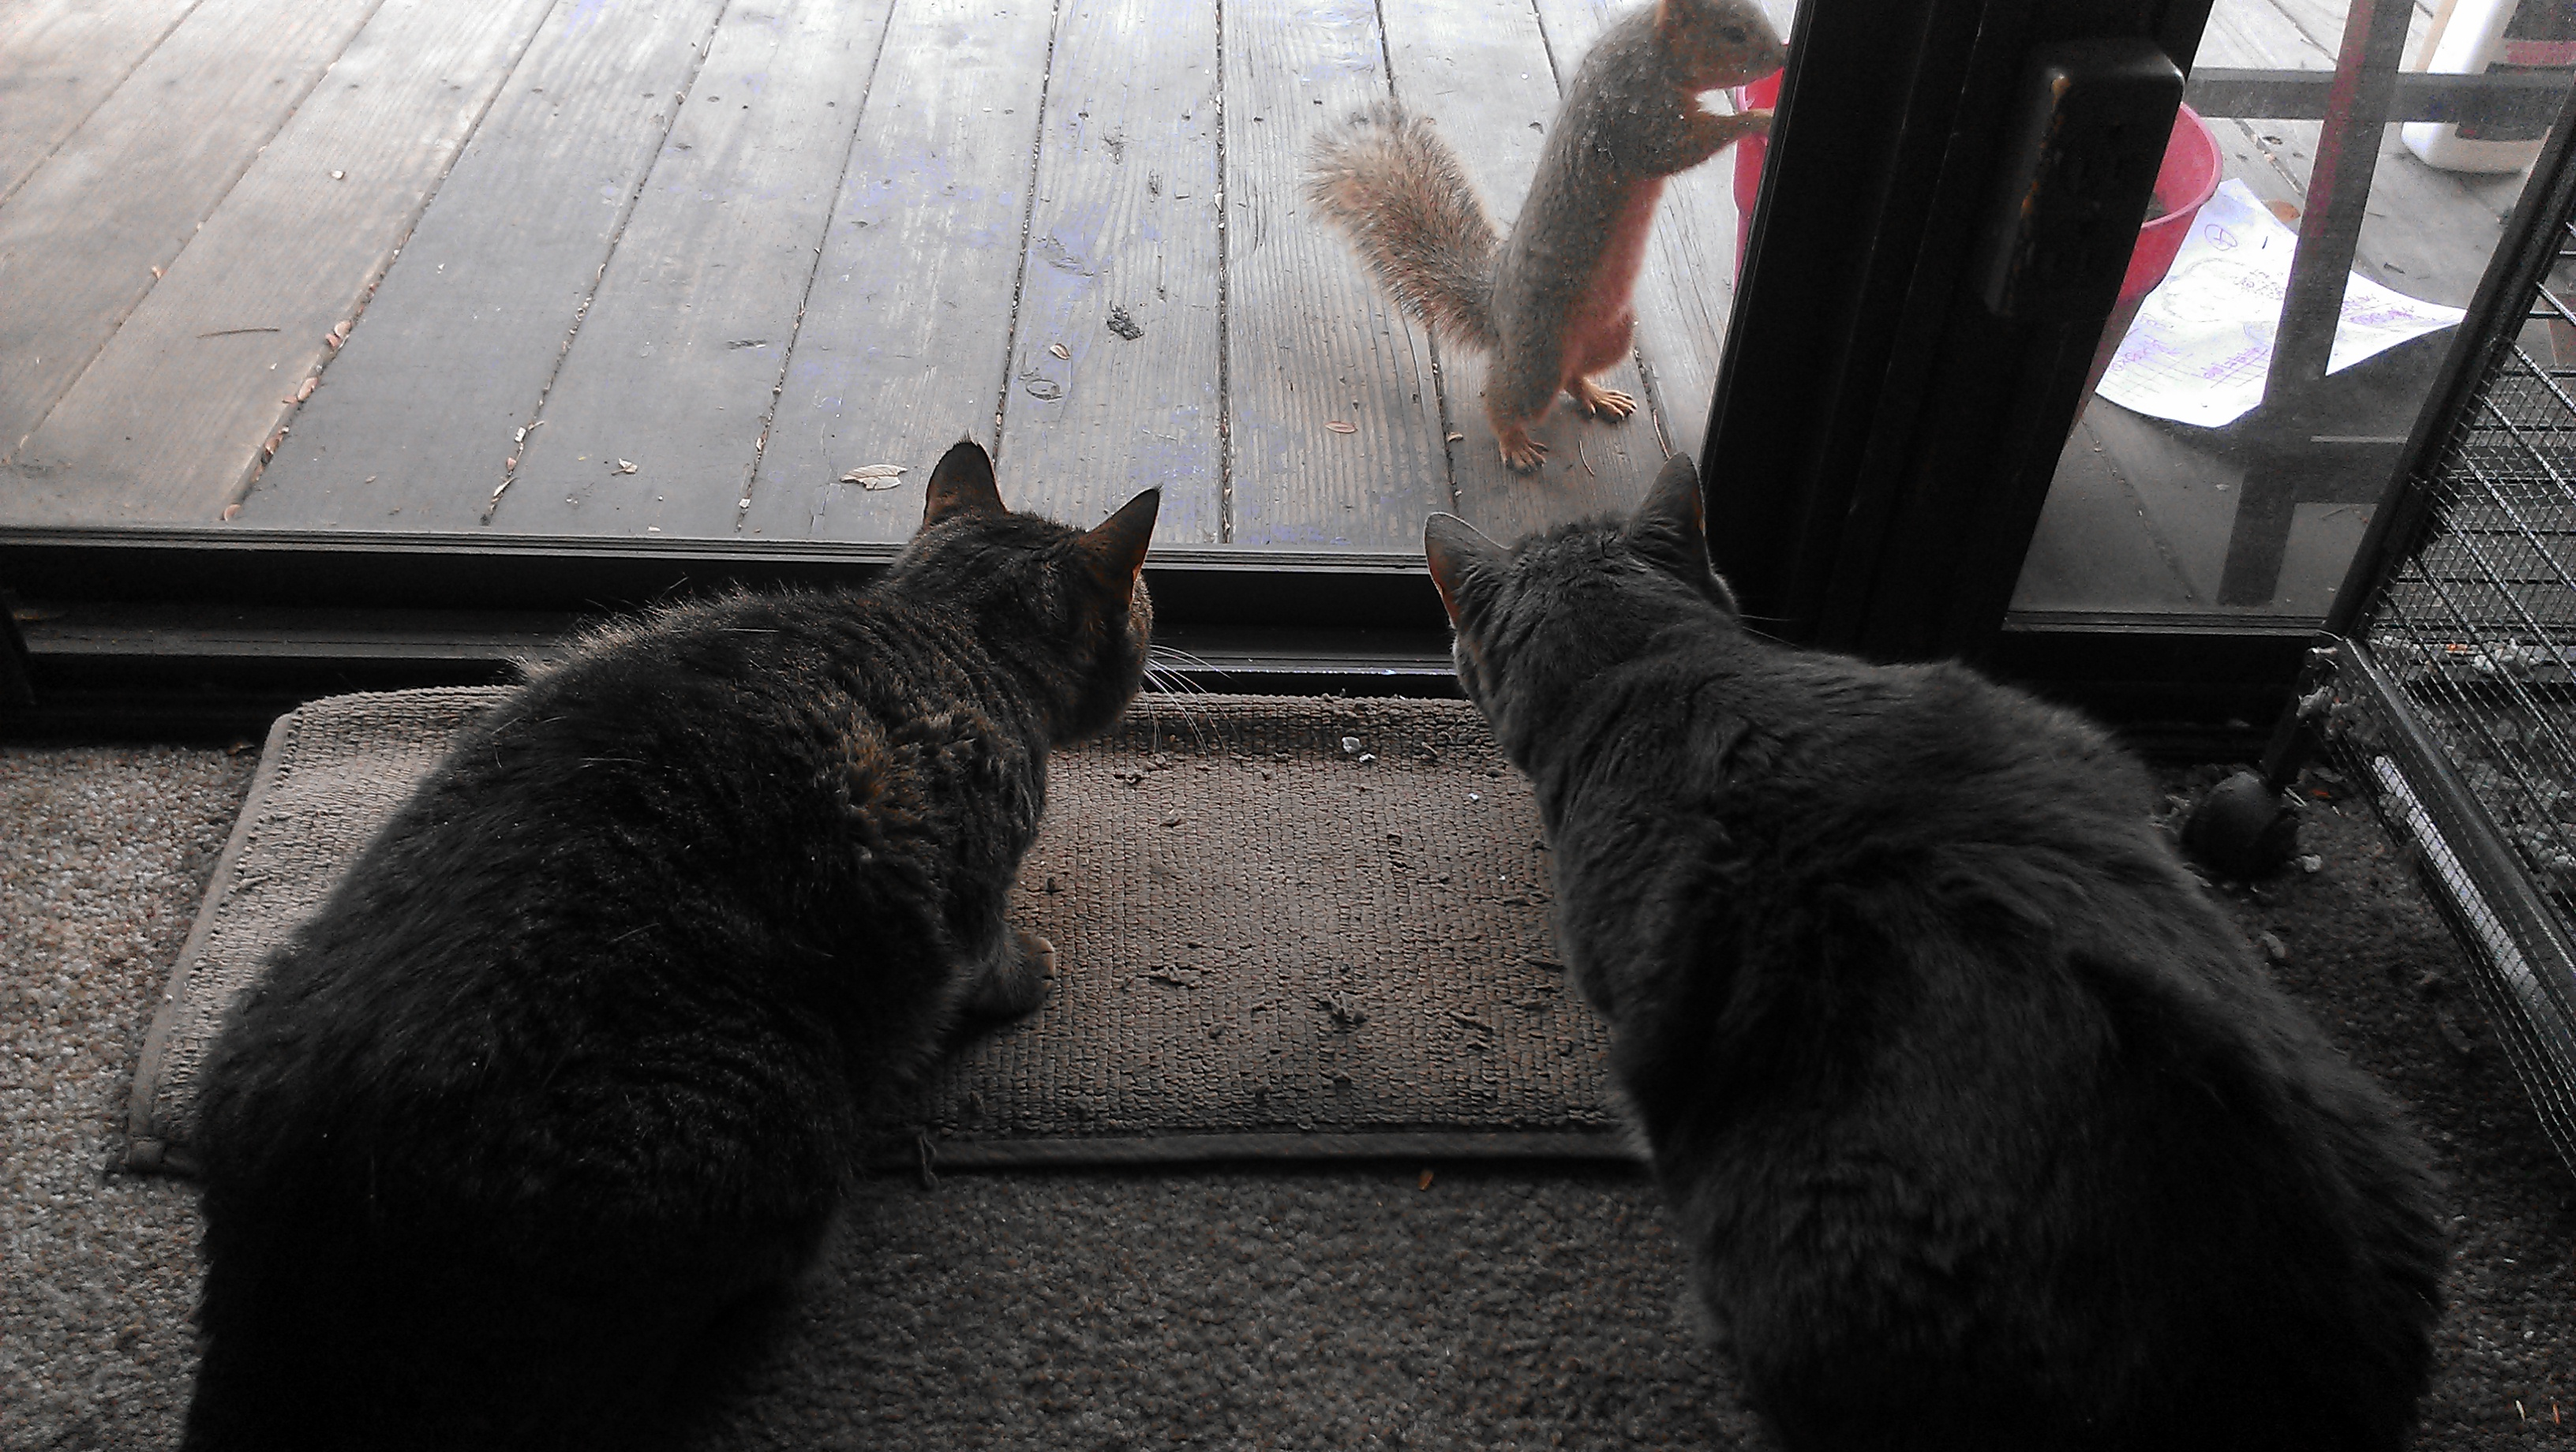 with both the cats